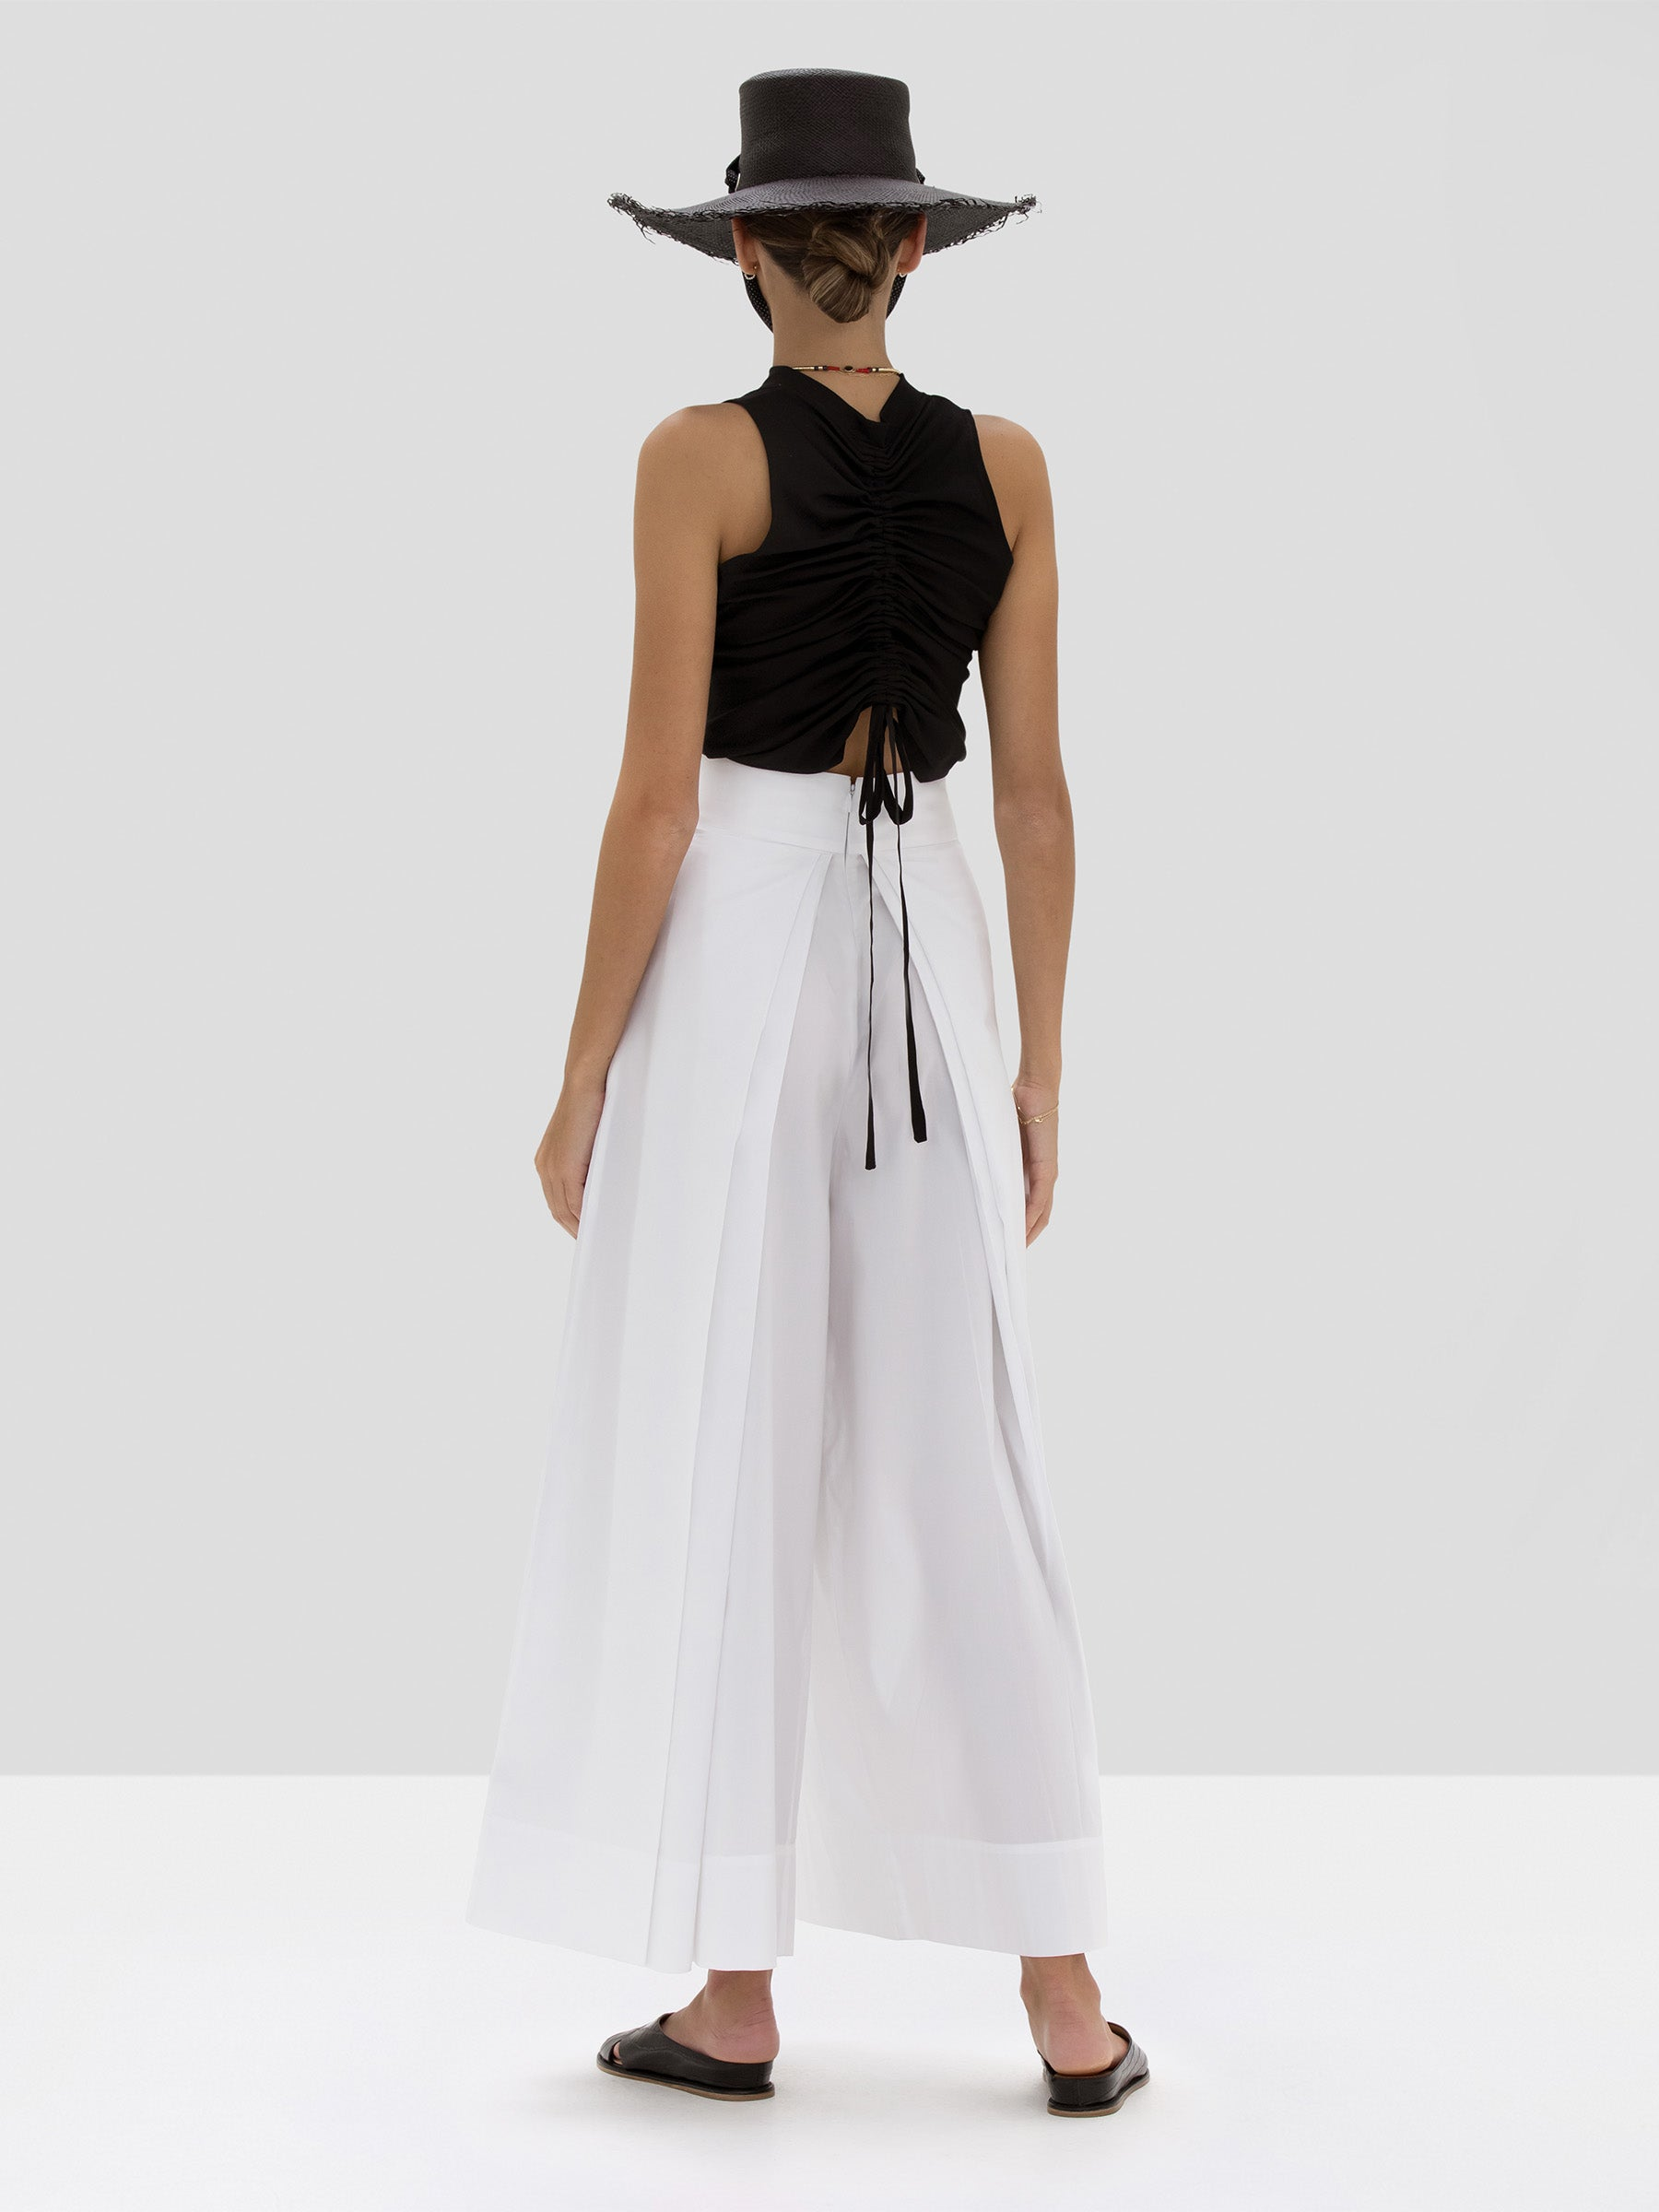 Alexis Teo Top in Black from the Spring Summer 2020 Collection - Rear View